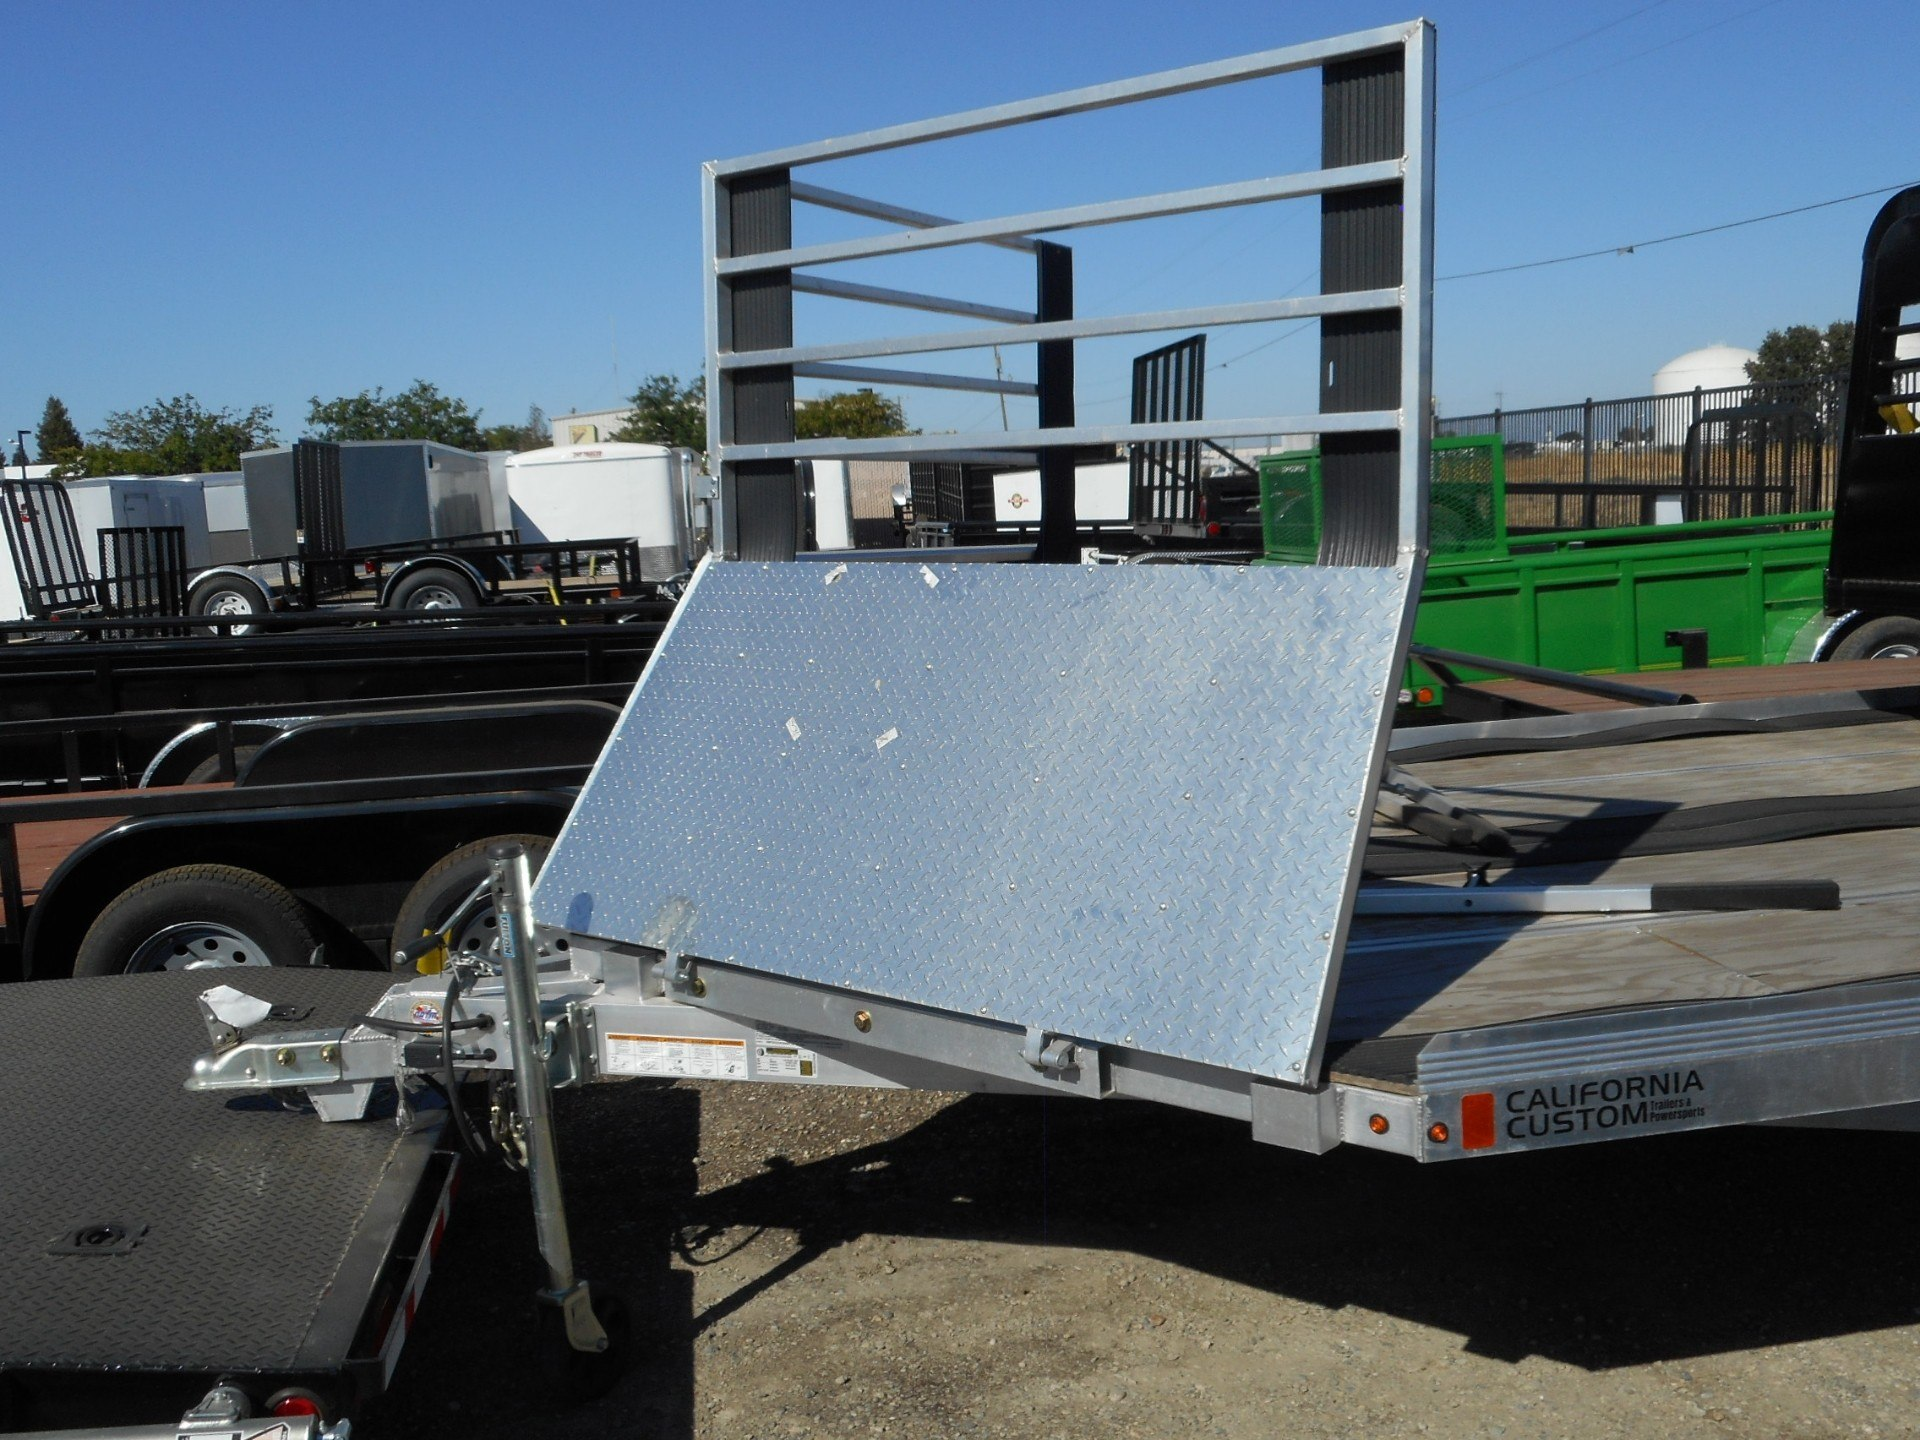 2016 Polaris Trailers 22' 4 Place Trailer in Elk Grove, California